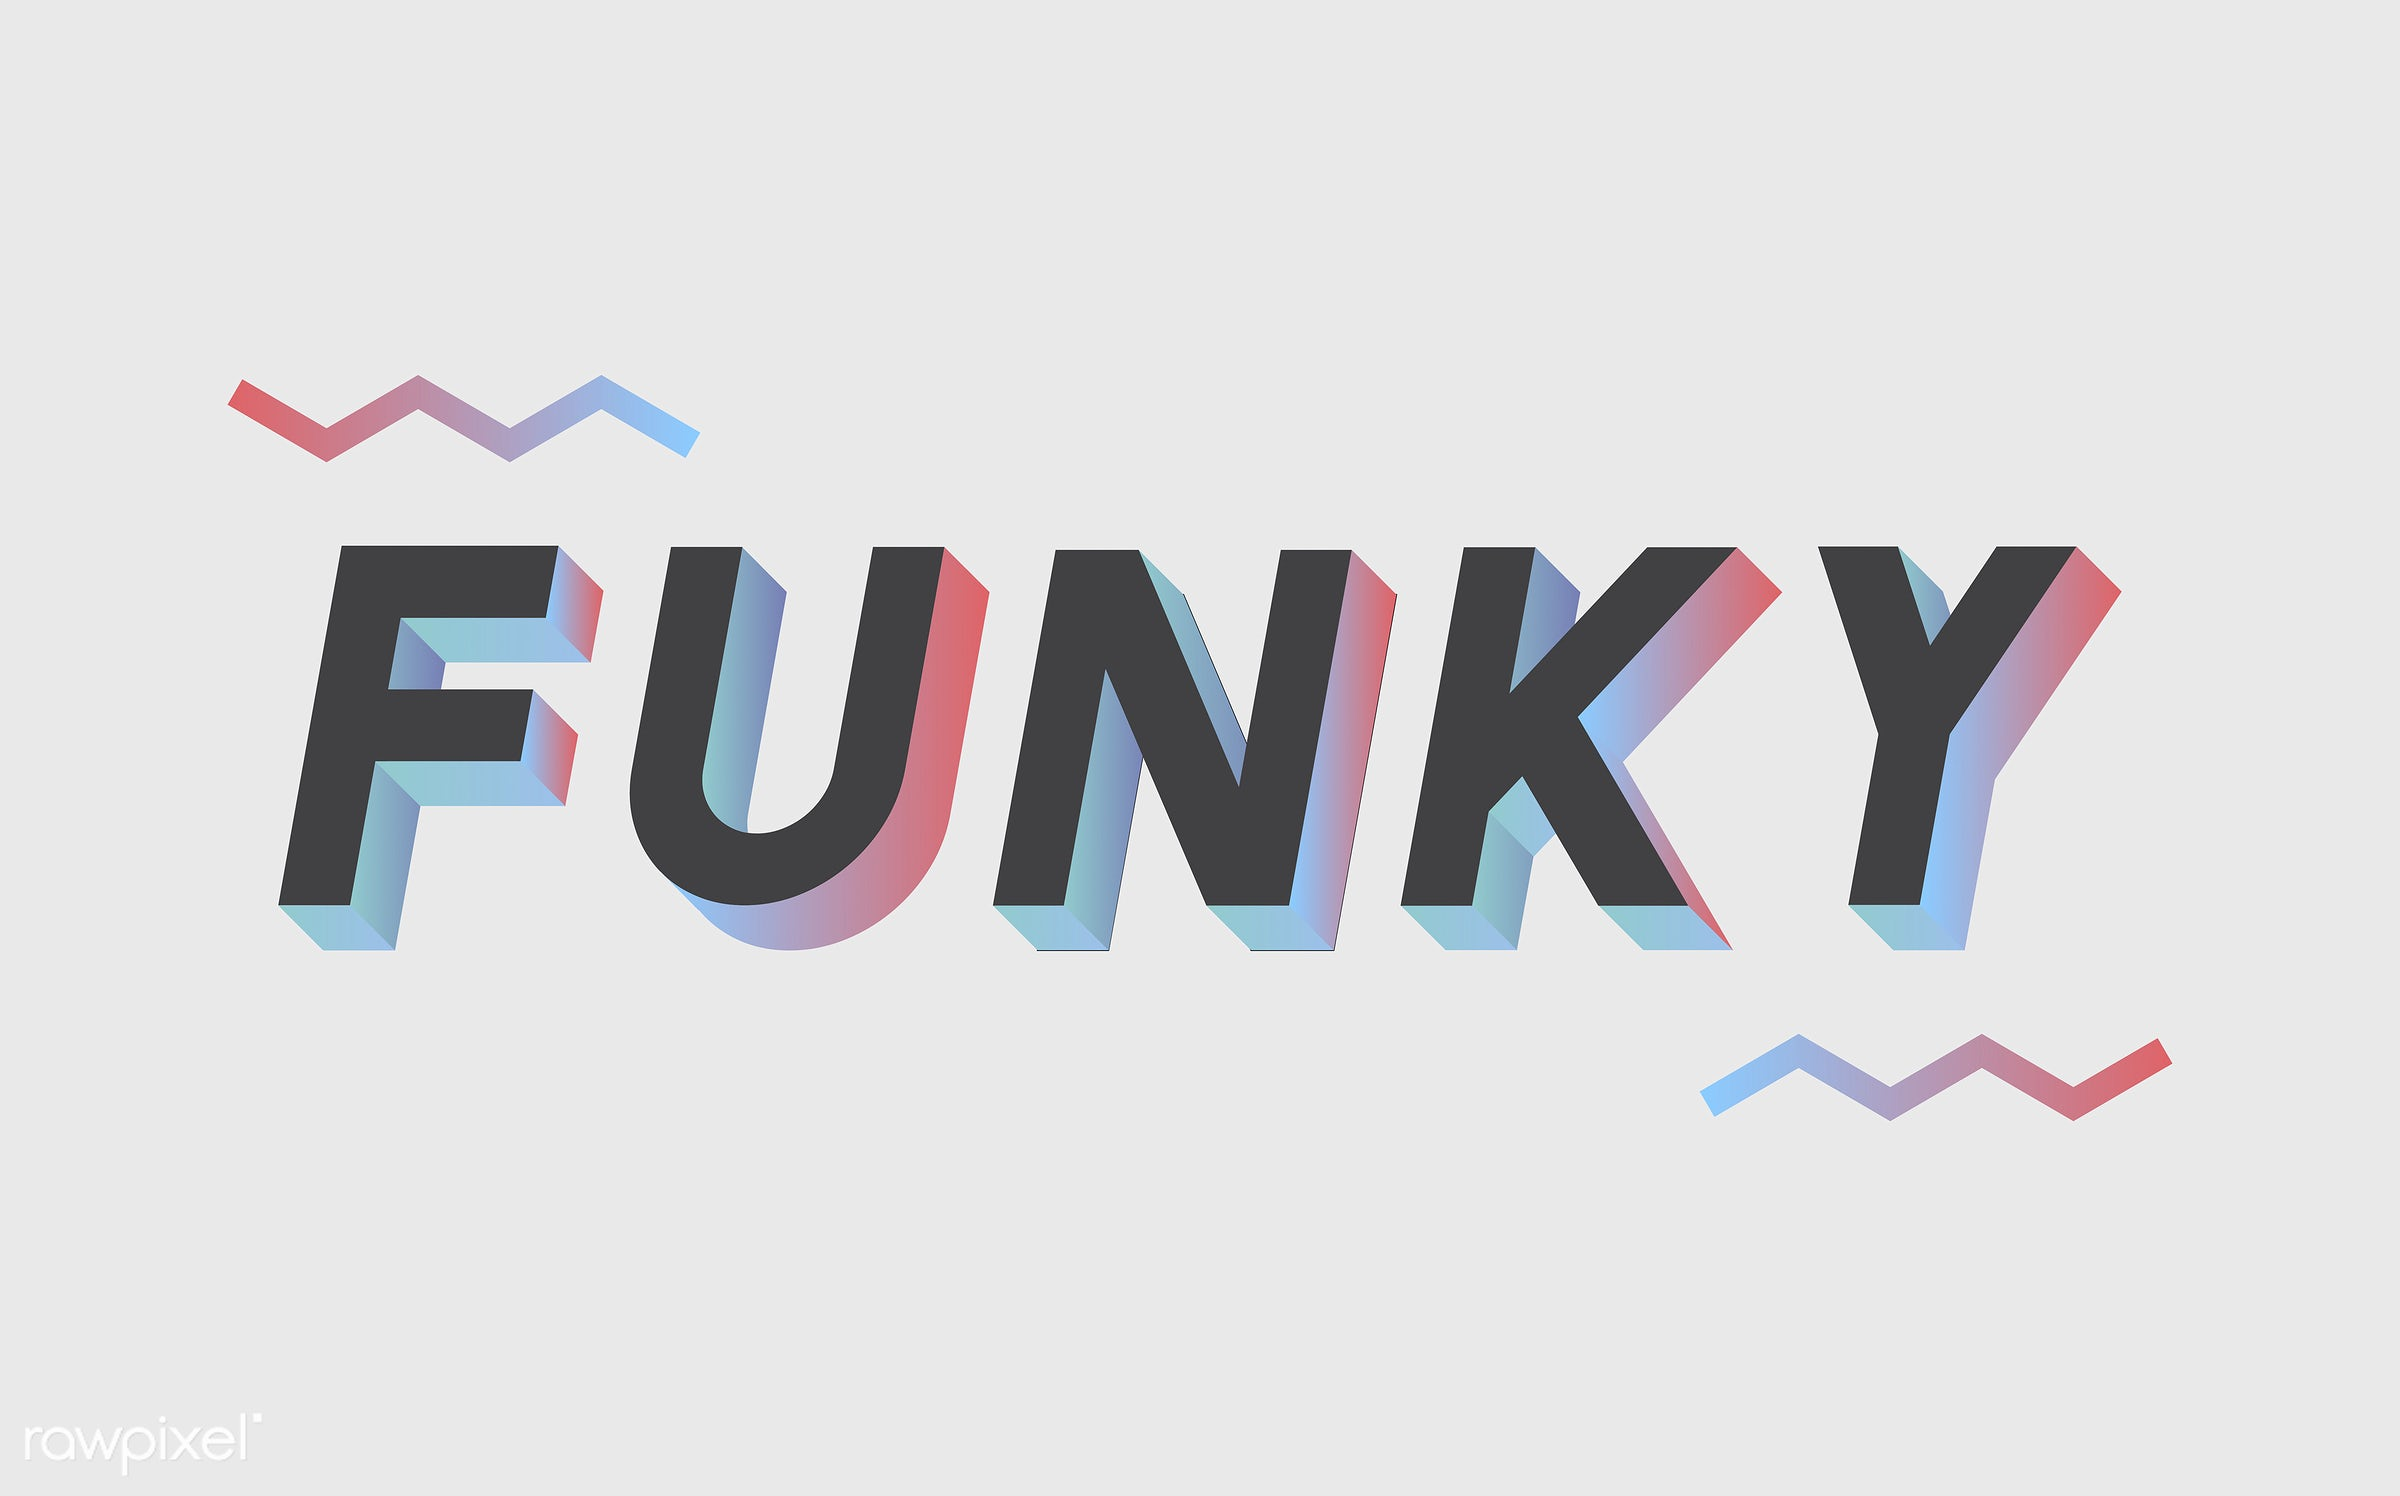 neon, colorful, 3d, three dimensional, vector, illustration, graphic, word, white, black, funky, cool, hip